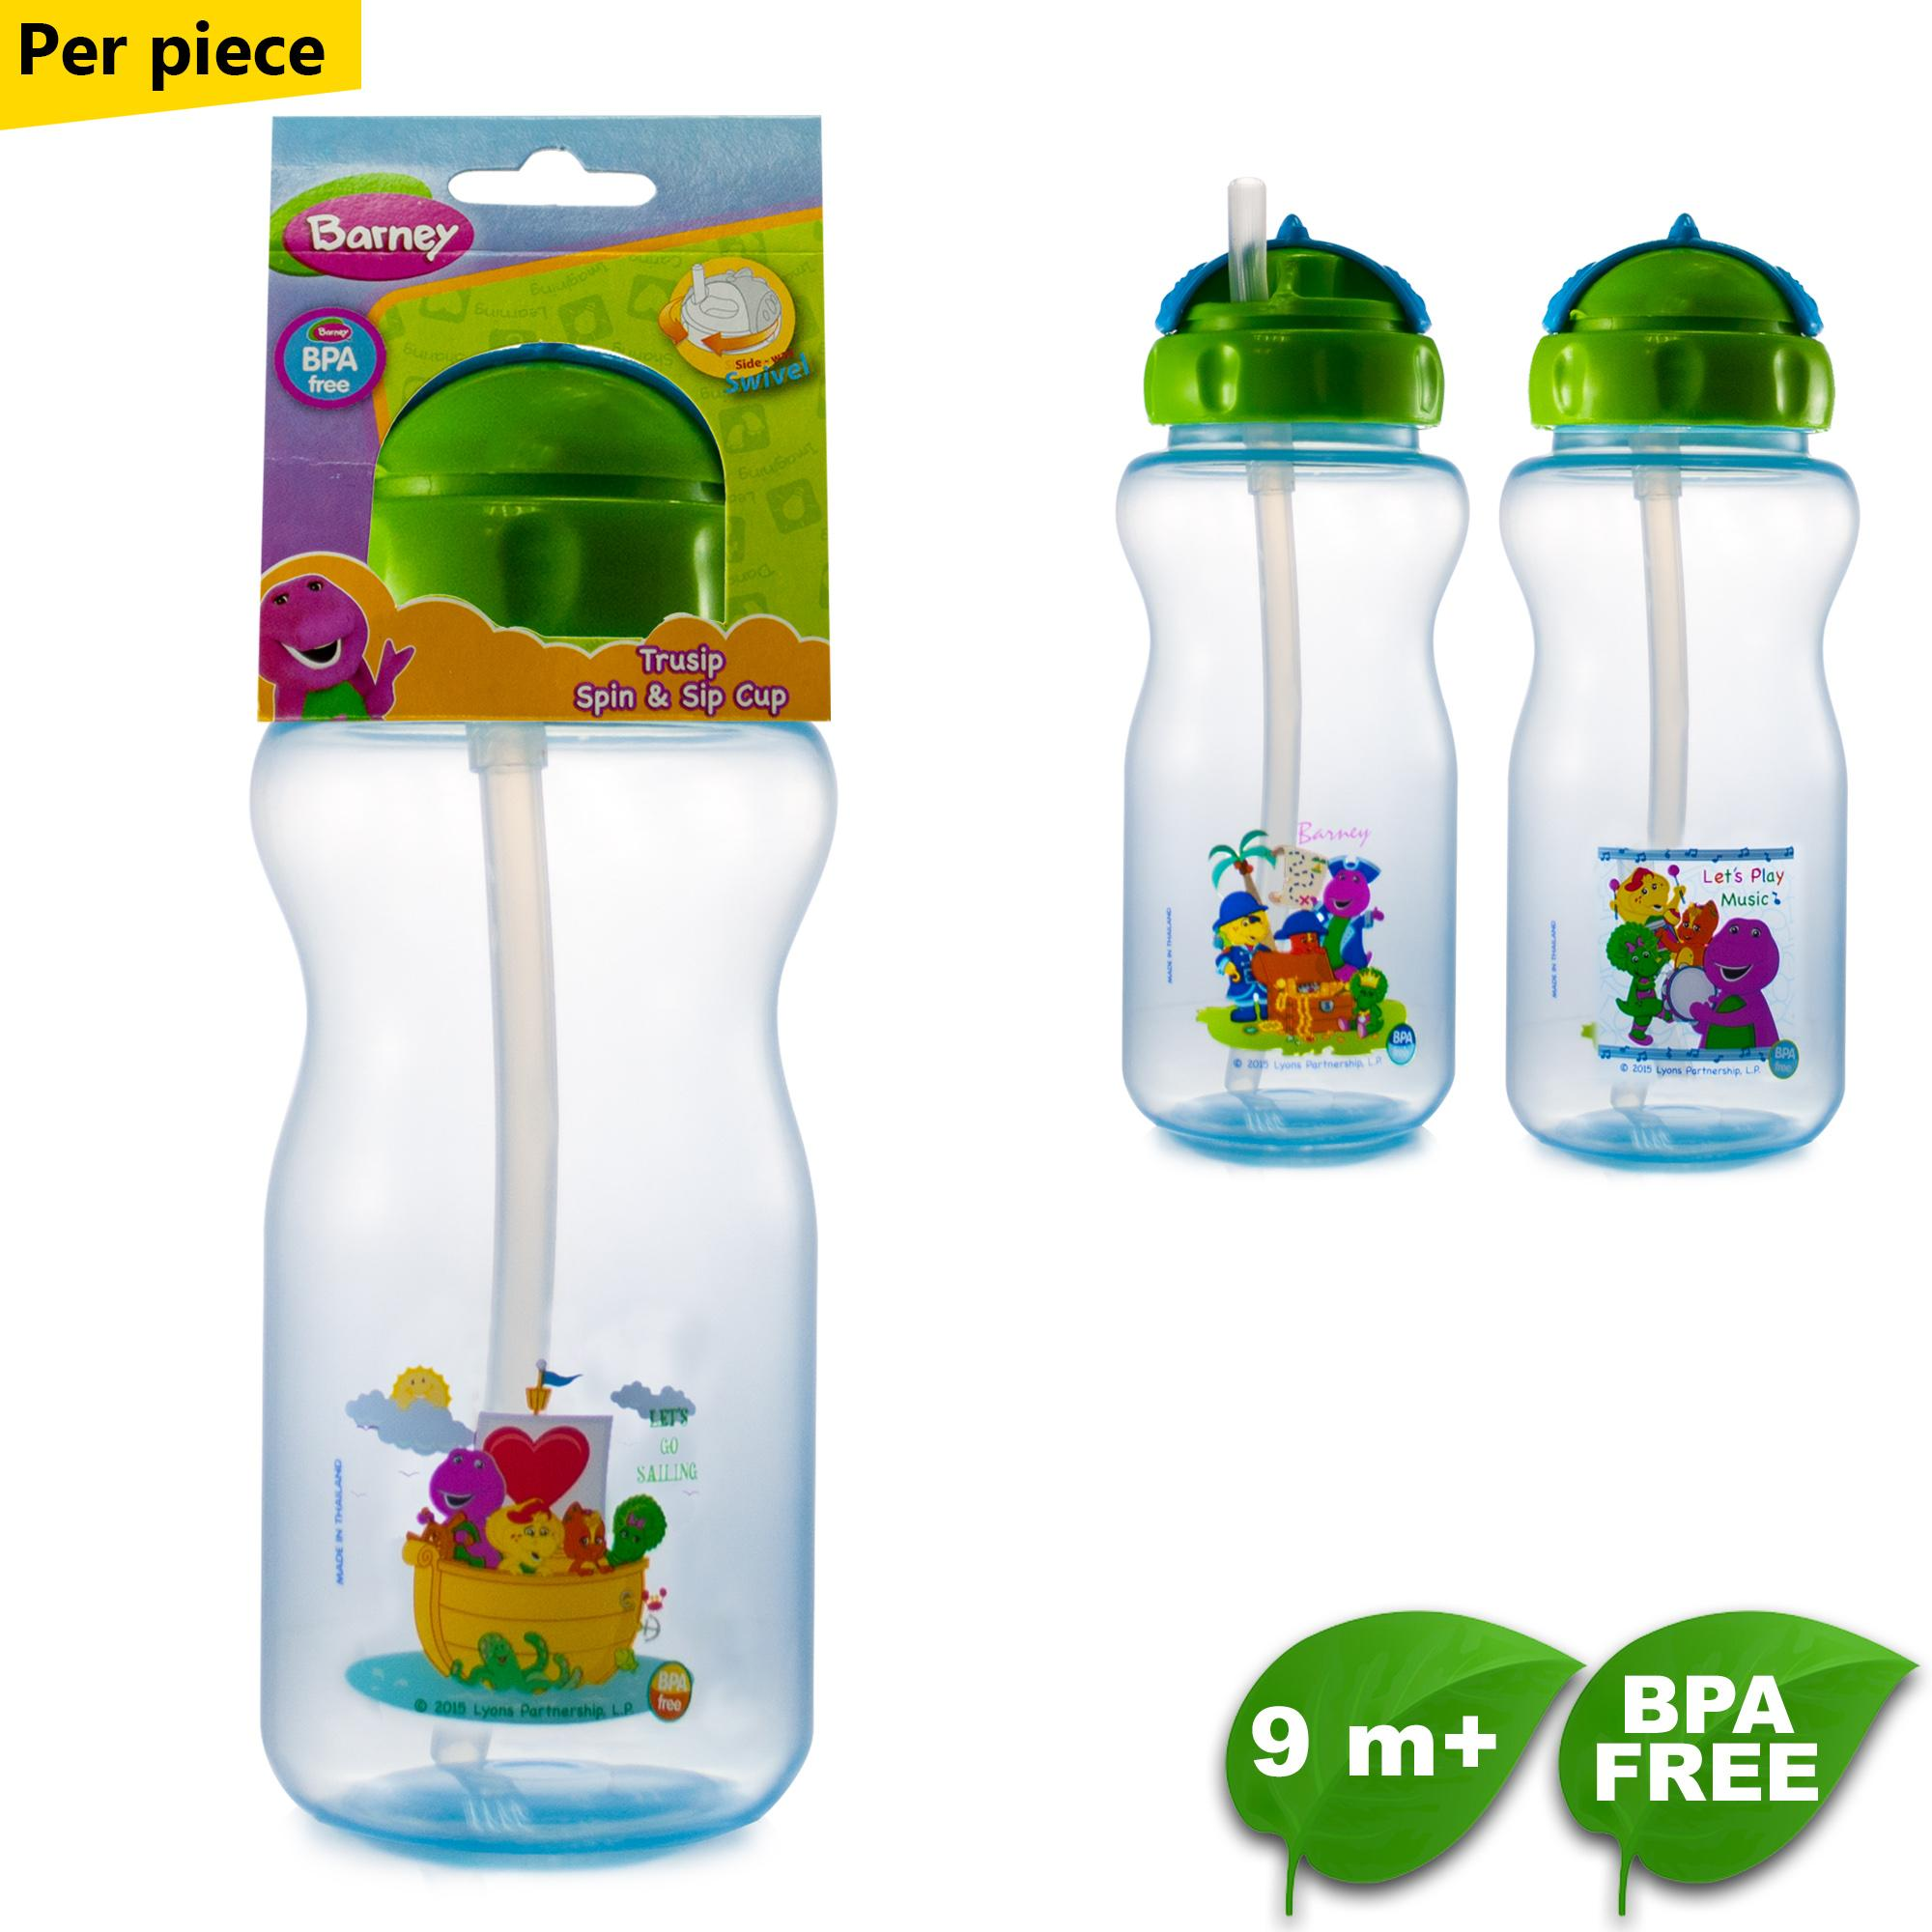 BPA FREE Barney Trusip Spin and Sip Cup